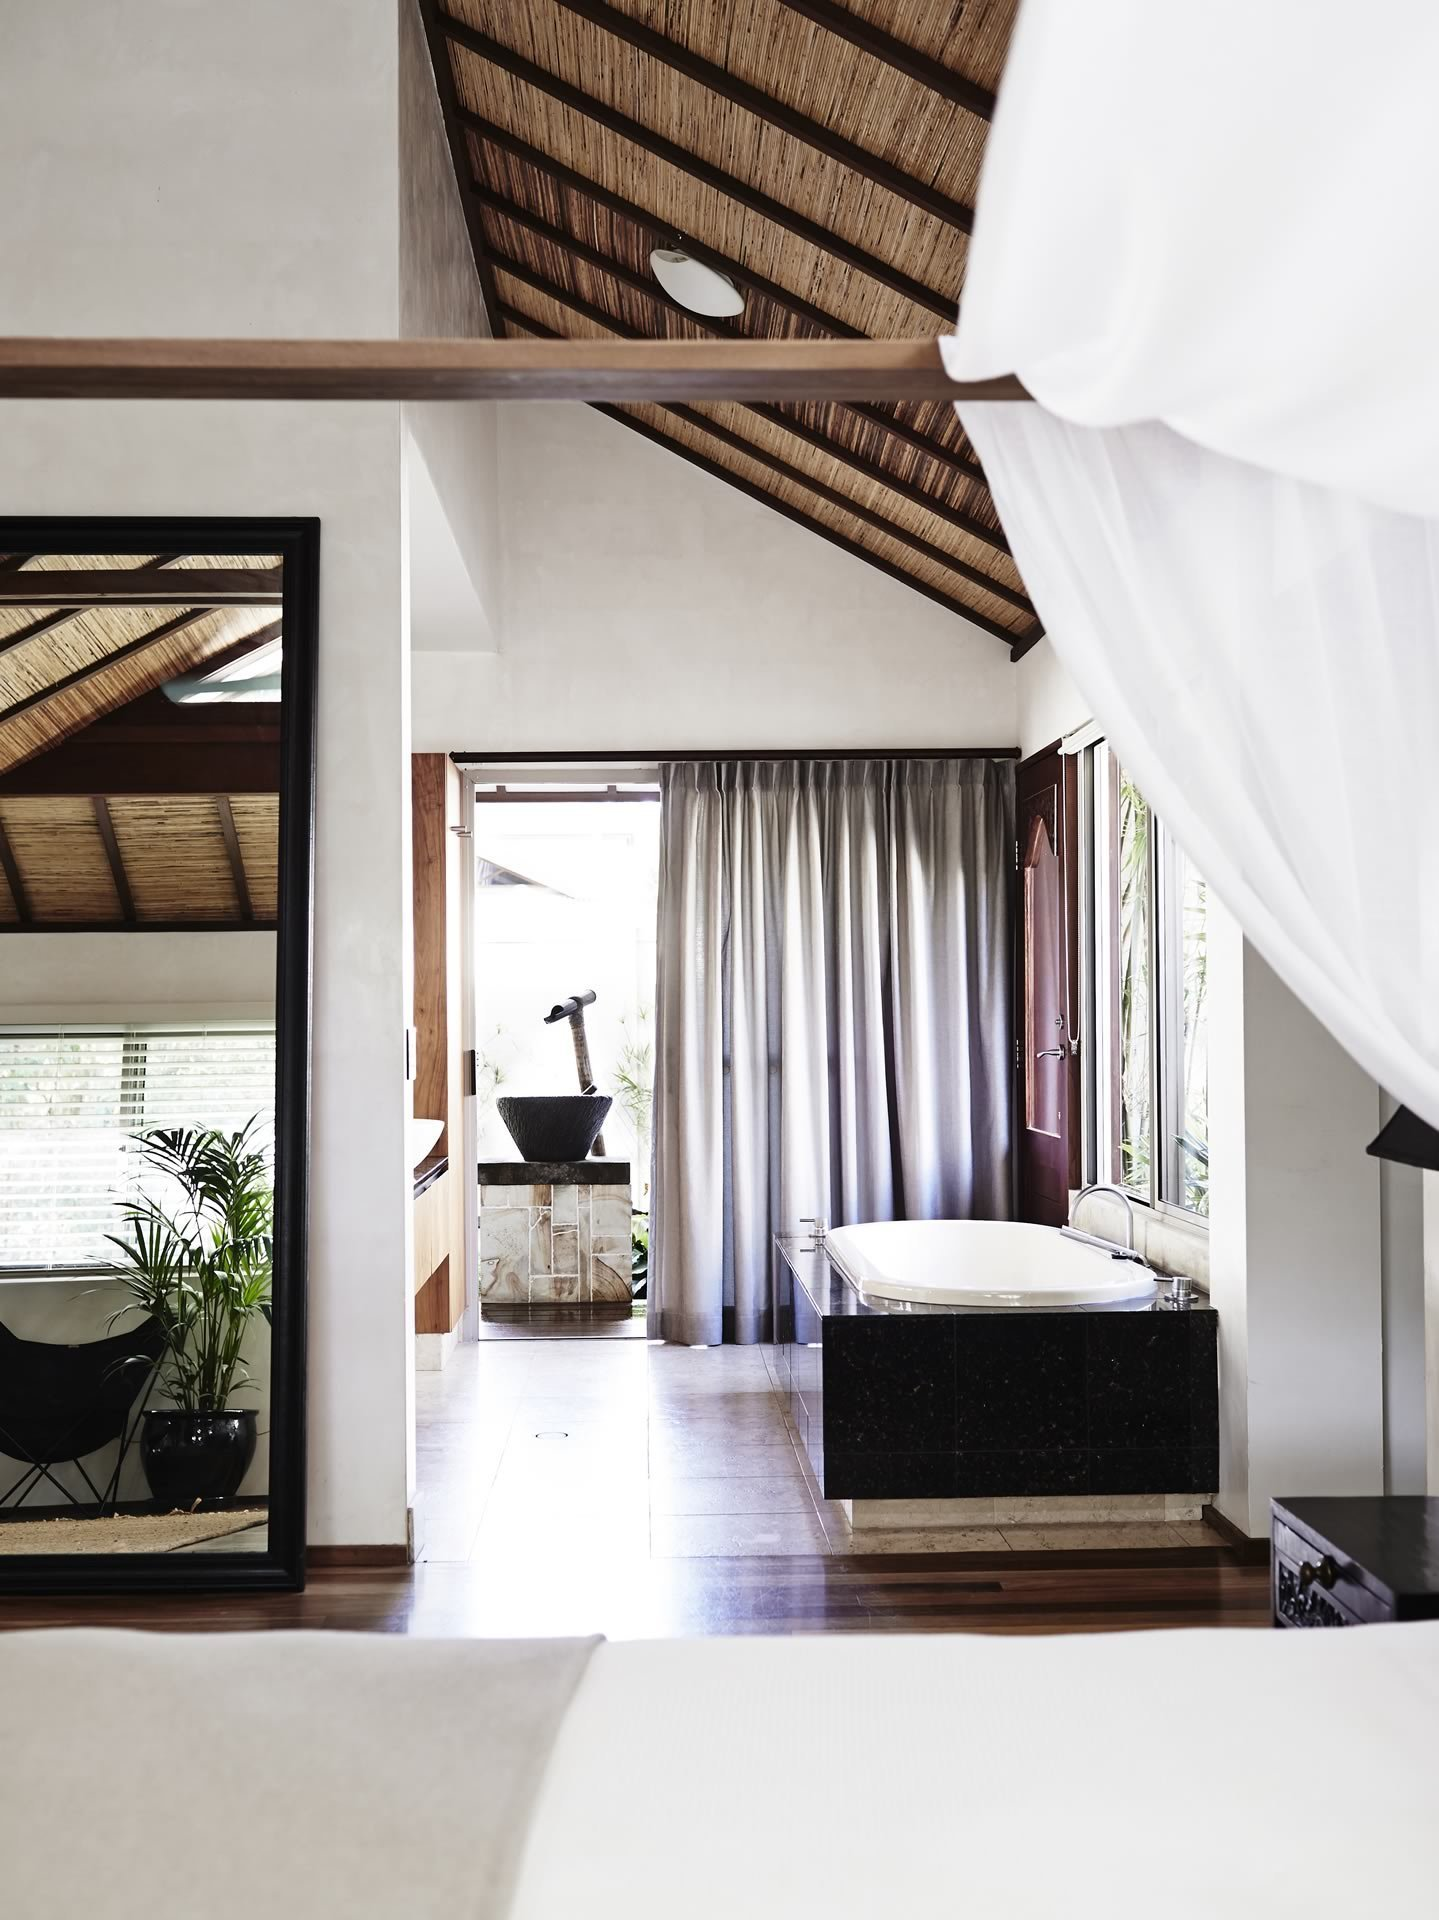 Best Where To Find Australia's Best Hotel – Travel Weekly With Pictures